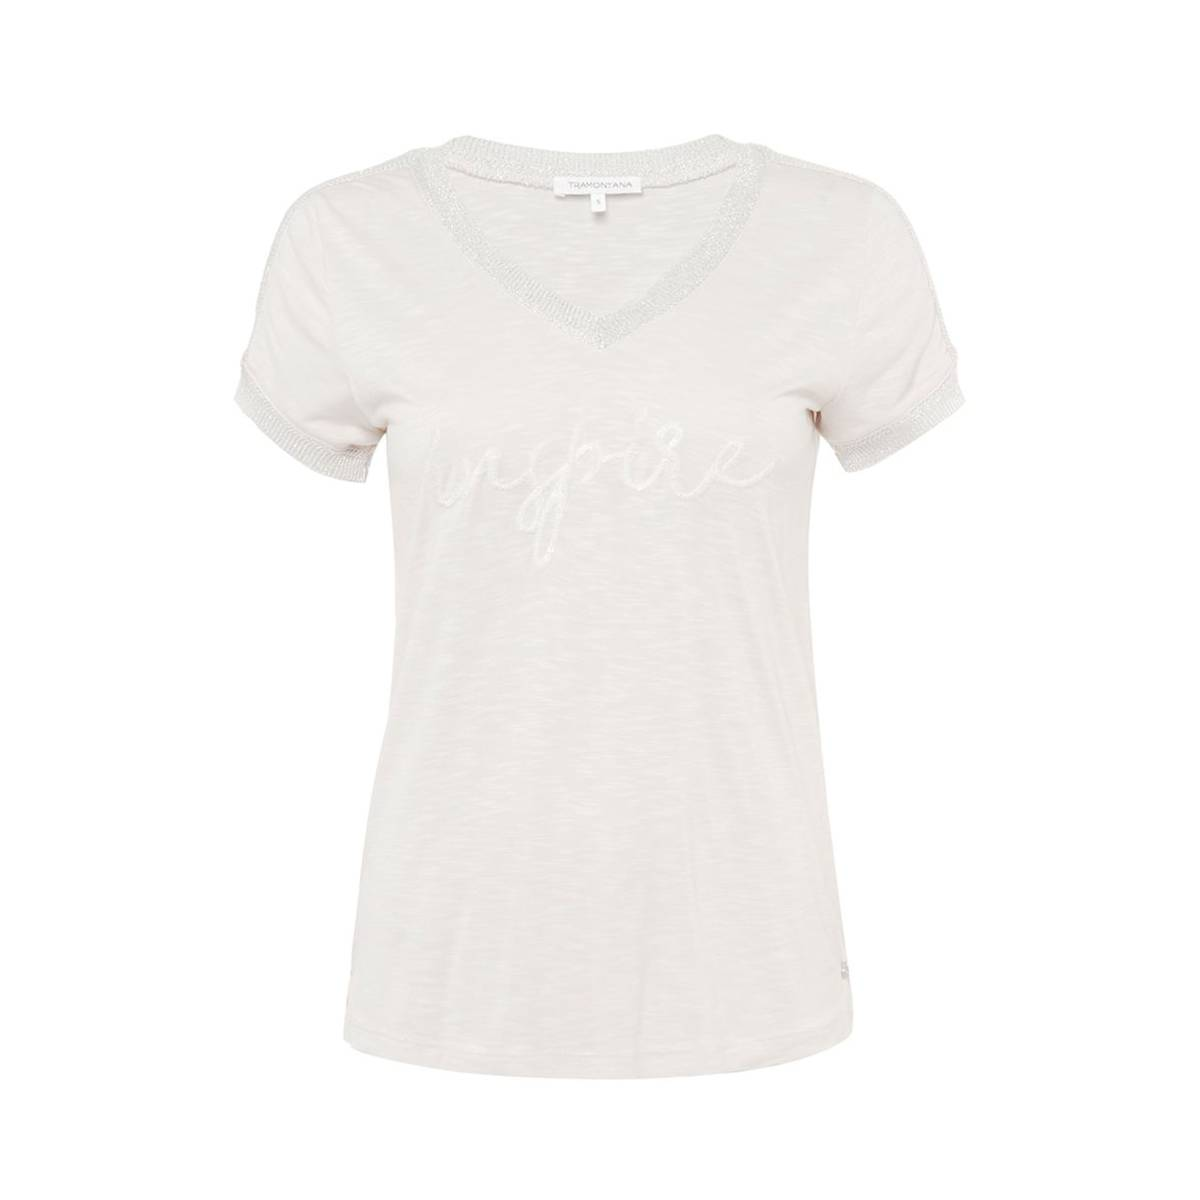 Tramontana D17-87-401 T-SHIRT FANCY RIB Wit